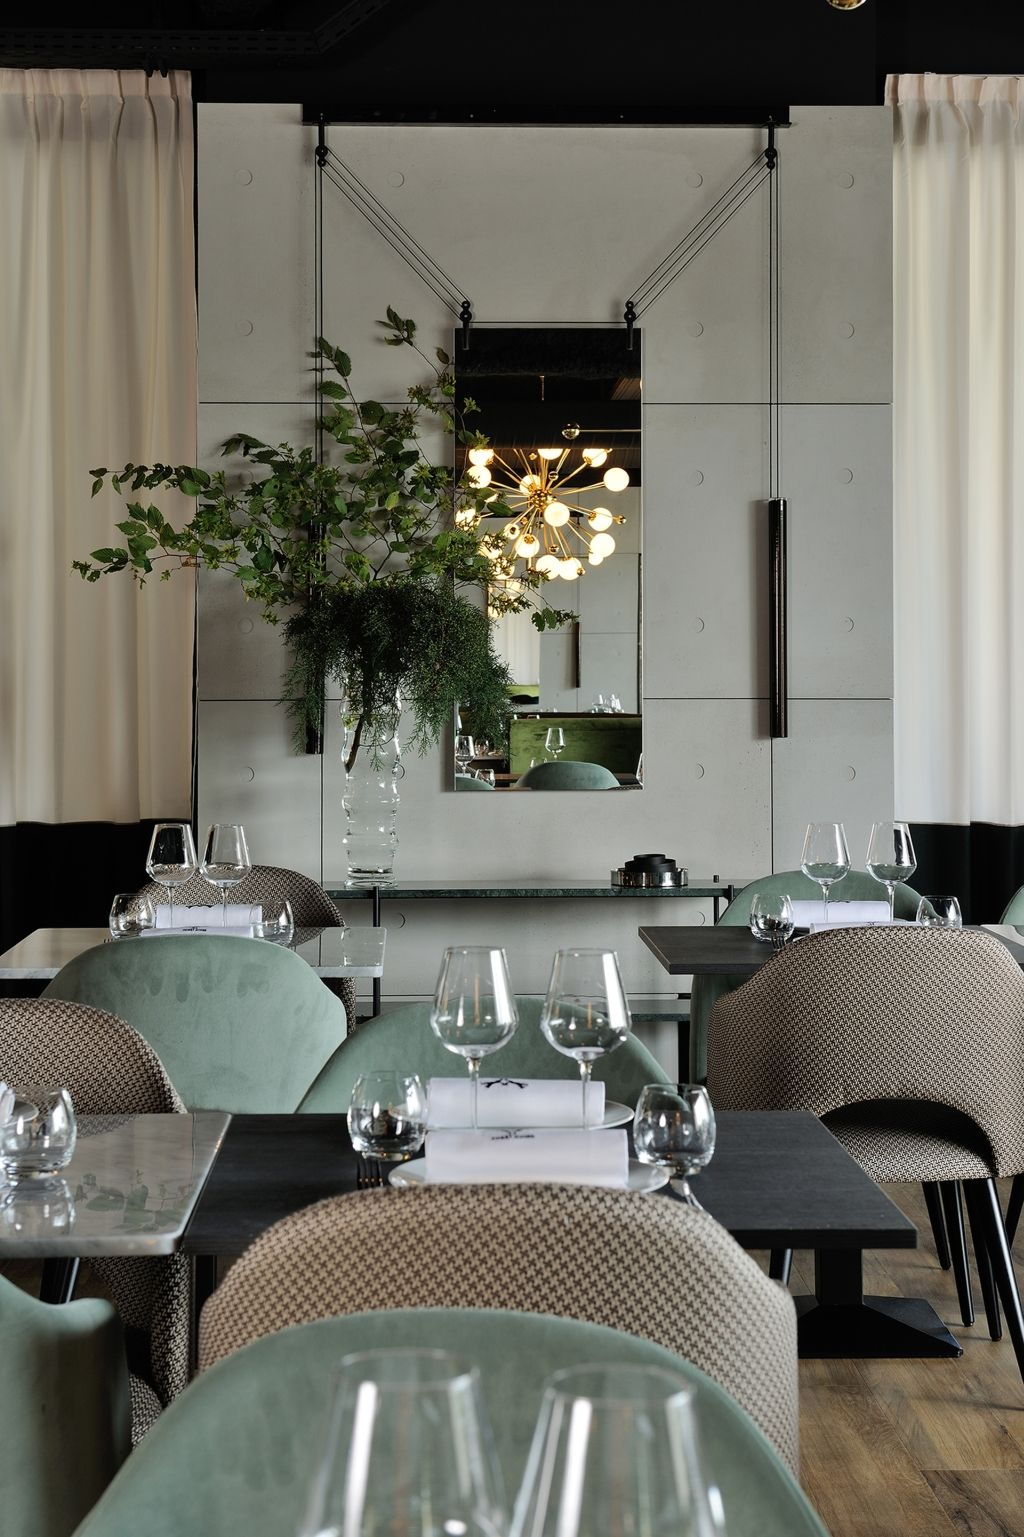 Palanco mirror design ronan and erwan bouroullec at for Hotel design foret noire